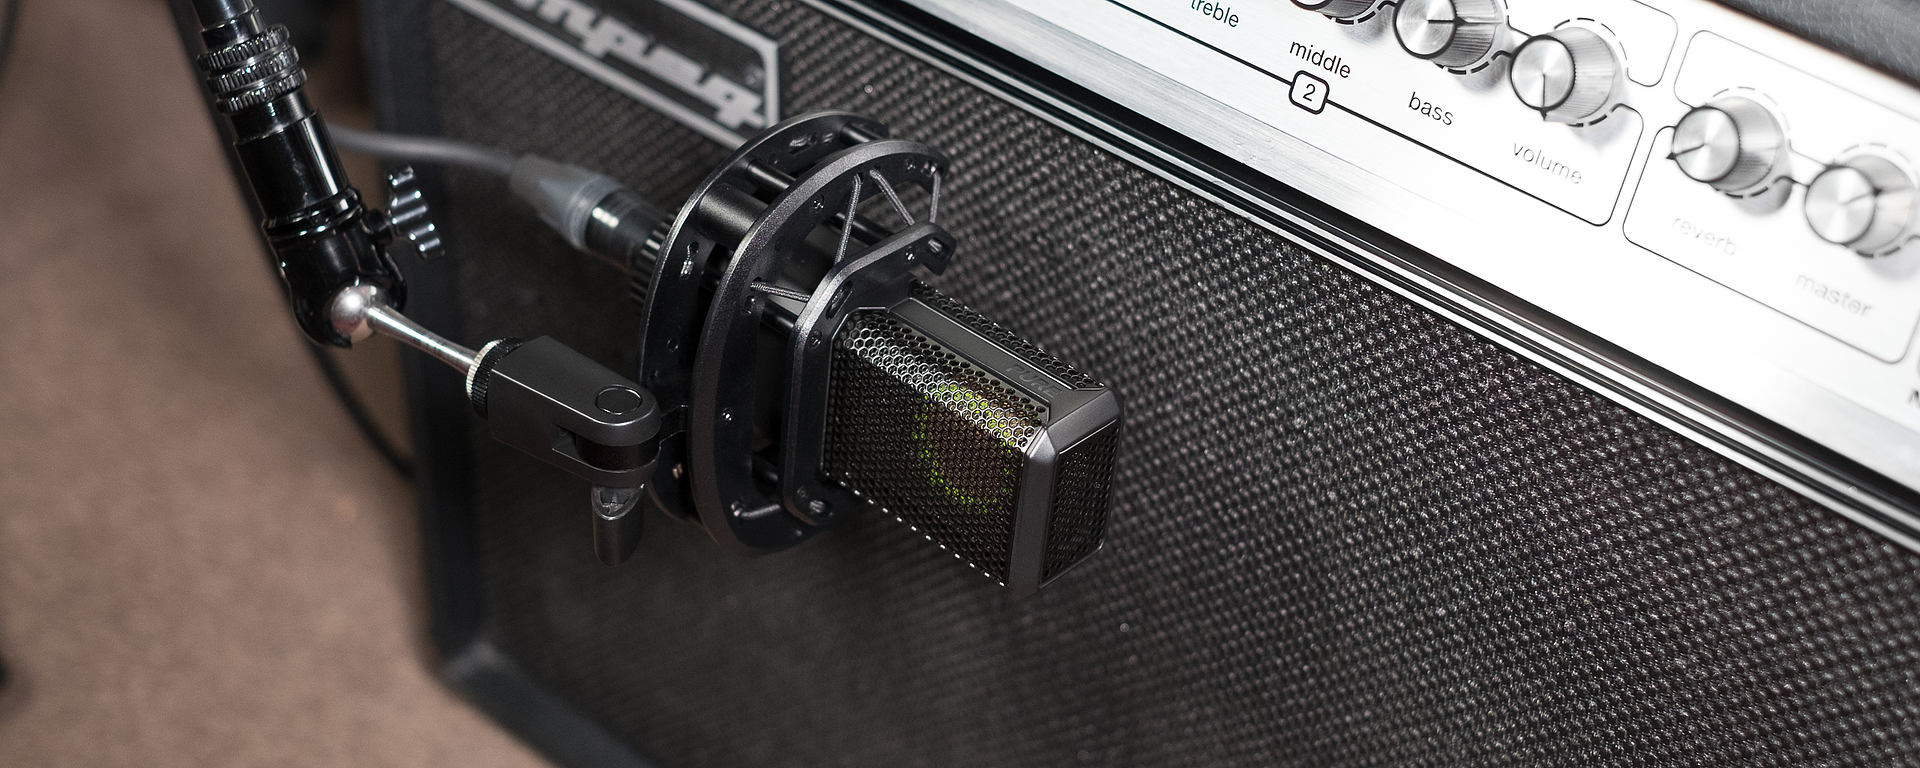 LCT 440 PURE used for recording a guitar amp